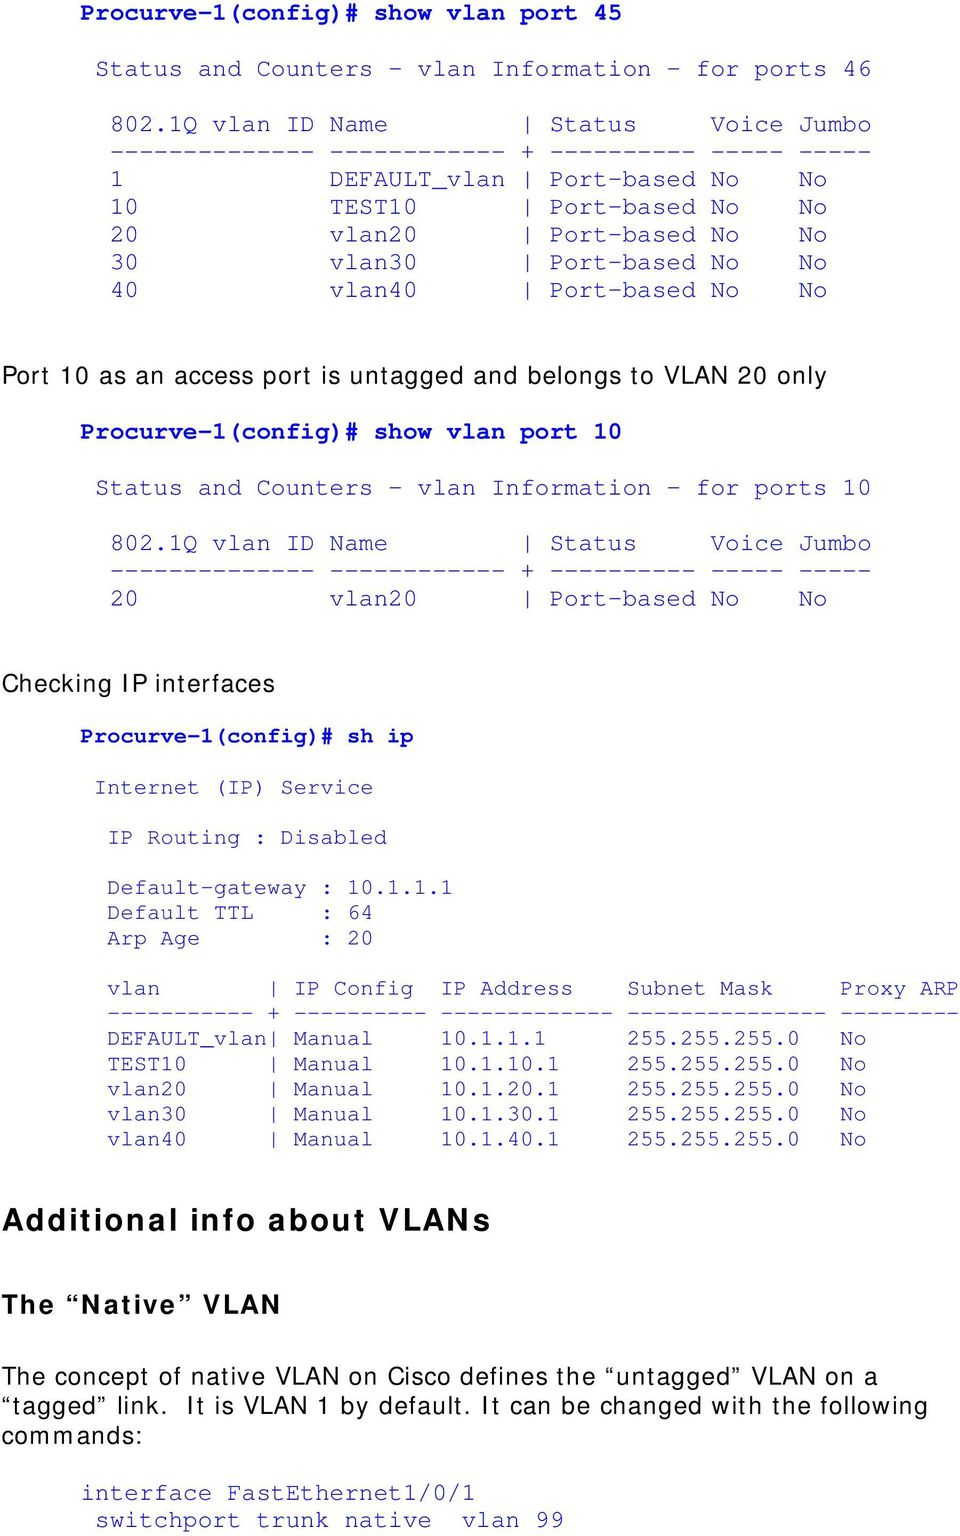 No 40 vlan40 Port-based No No Port 10 as an access port is untagged and belongs to VLAN 20 only Procurve-1(config)# show vlan port 10 Status and Counters - vlan Information - for ports 10 802.